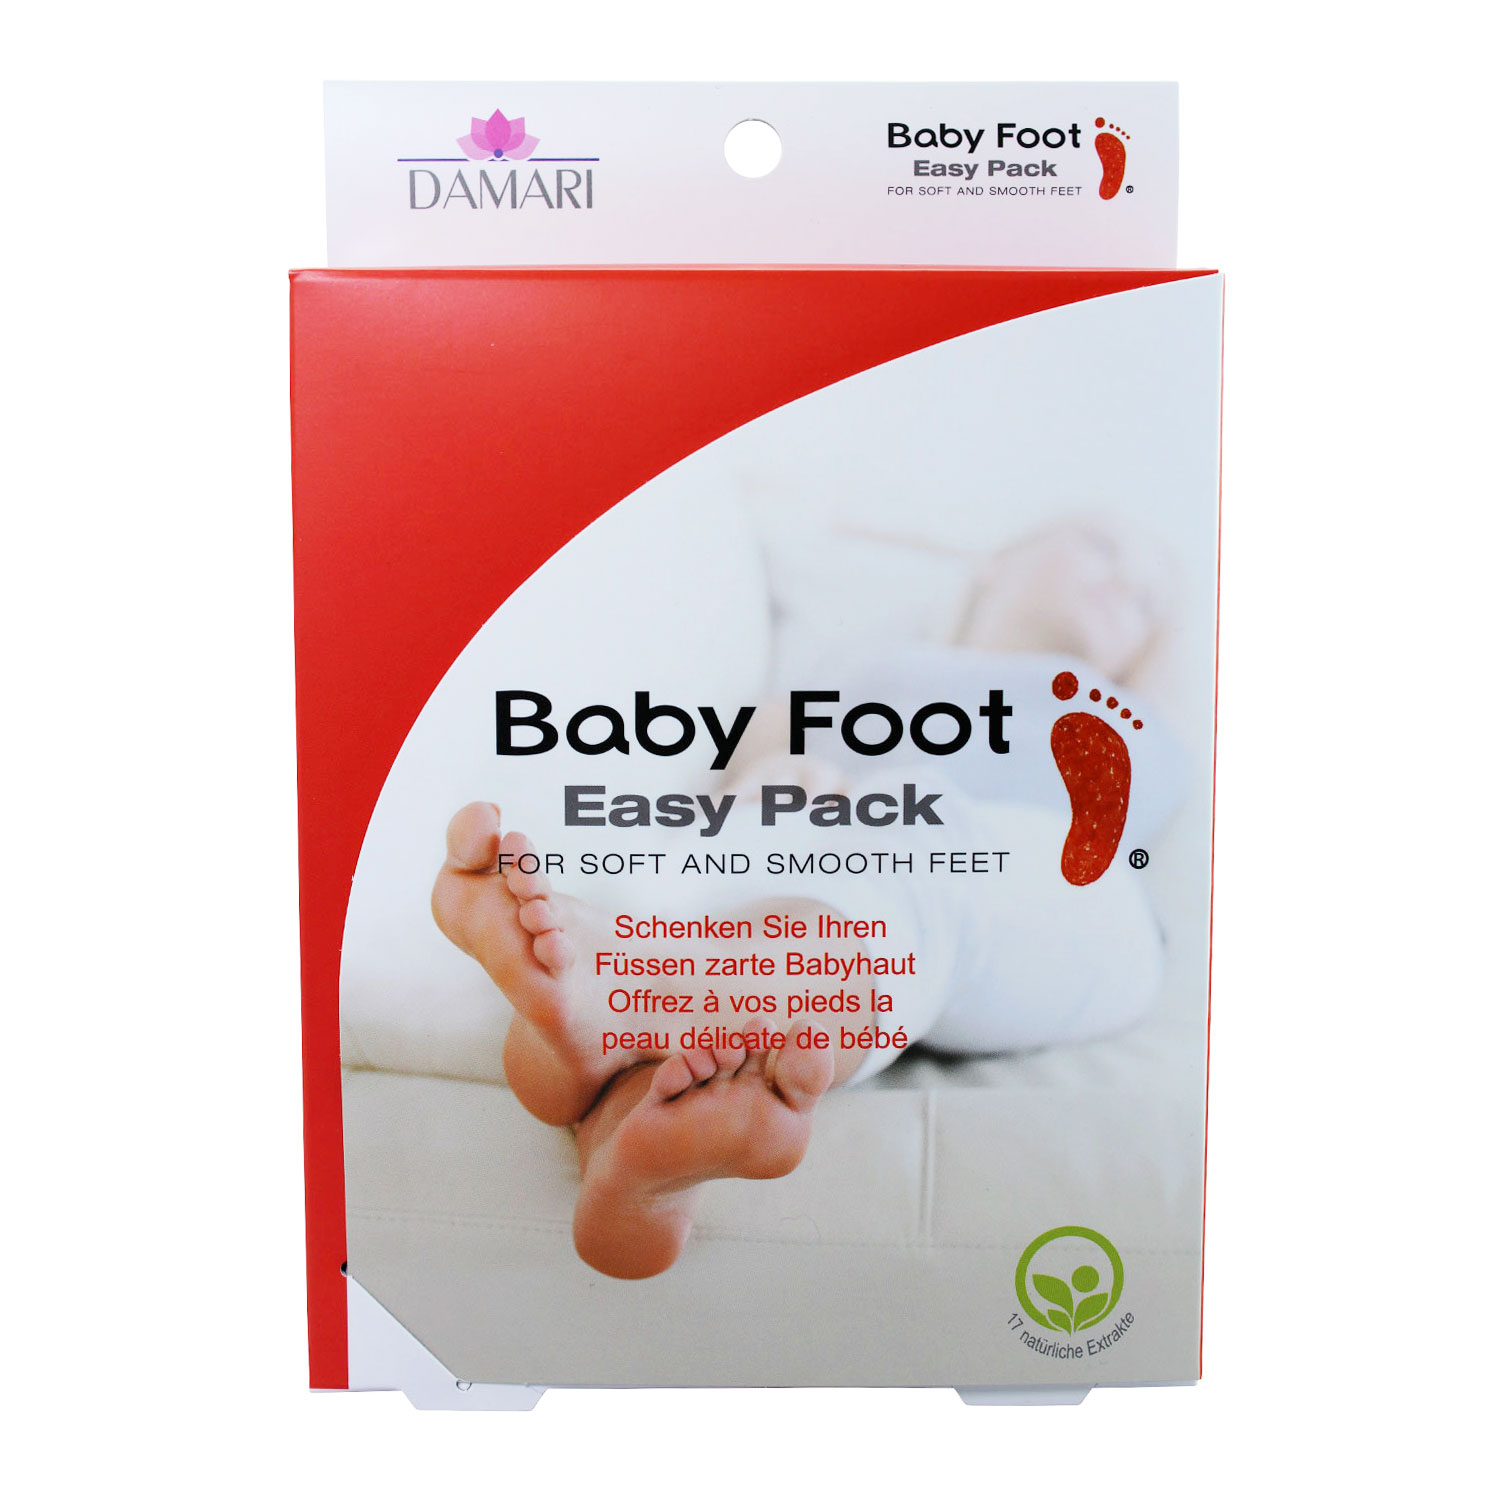 Baby Foot - Easy Pack